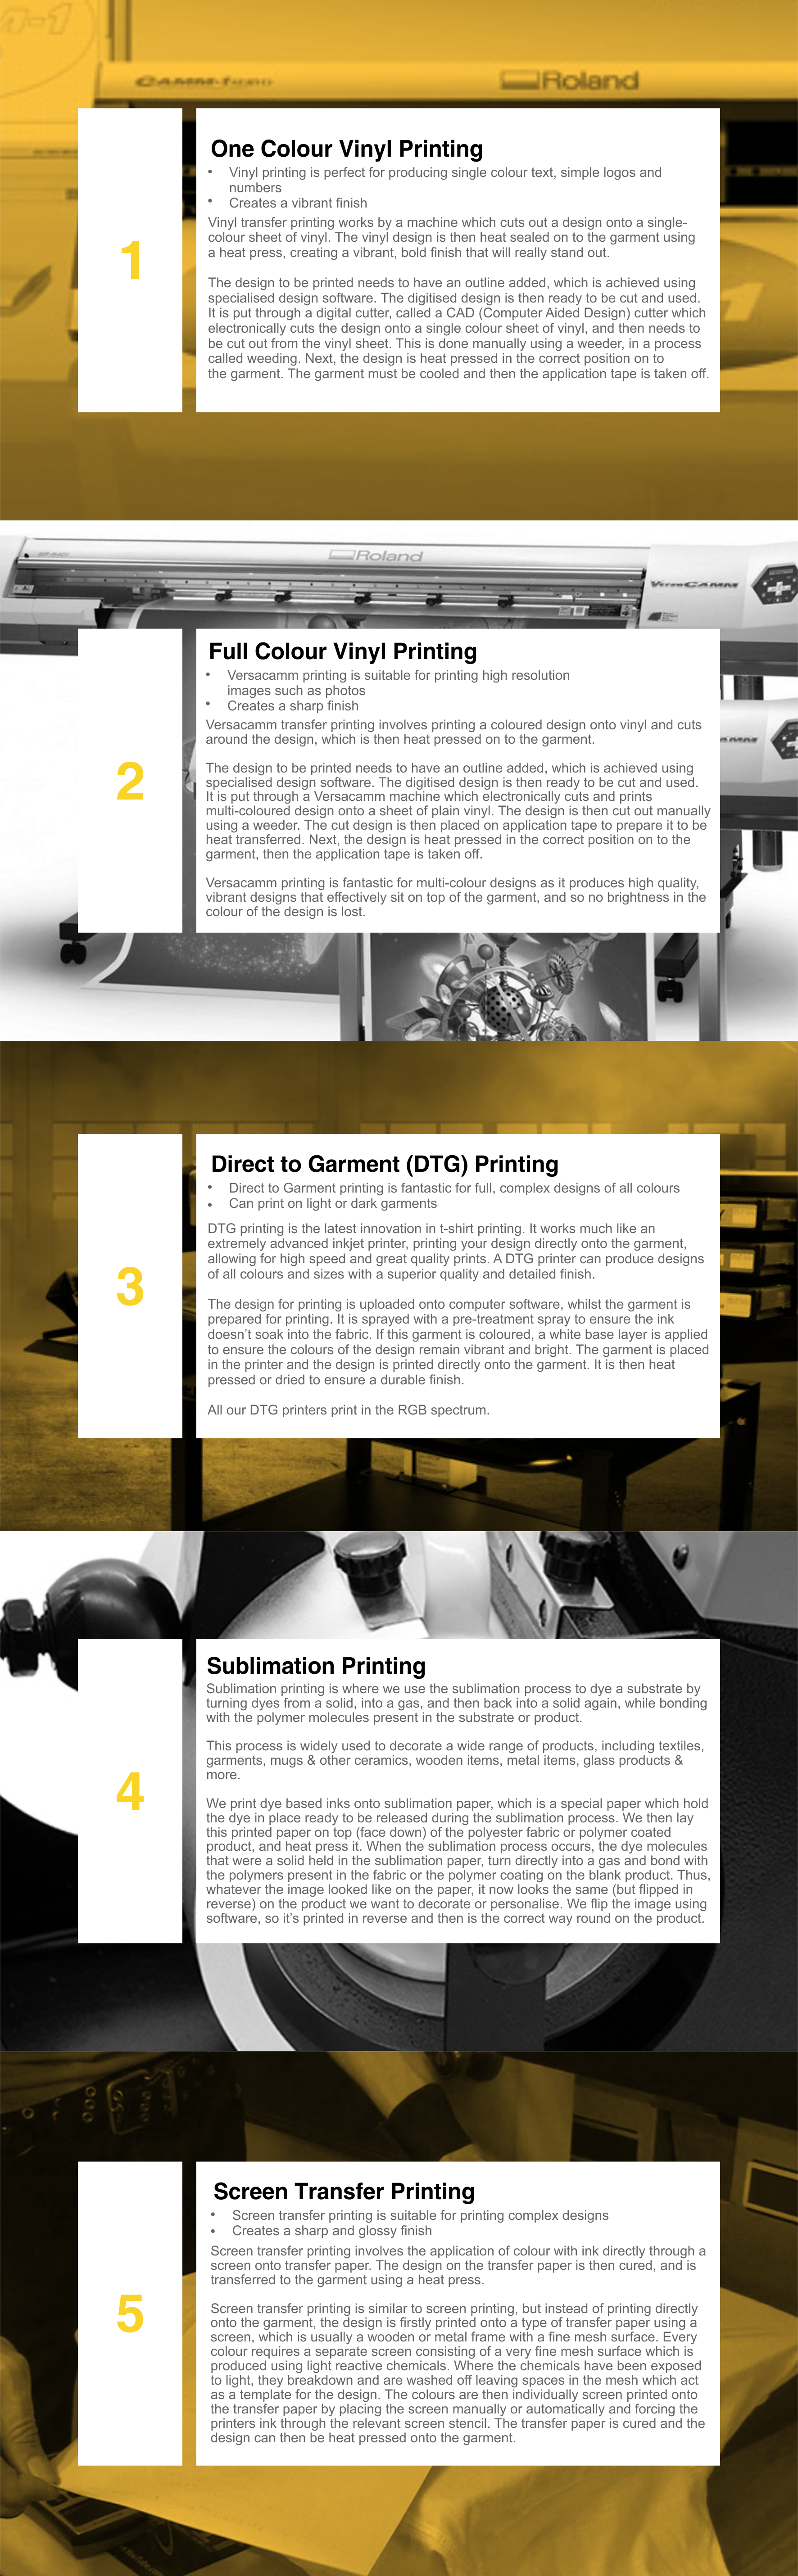 print-page-images-2.png